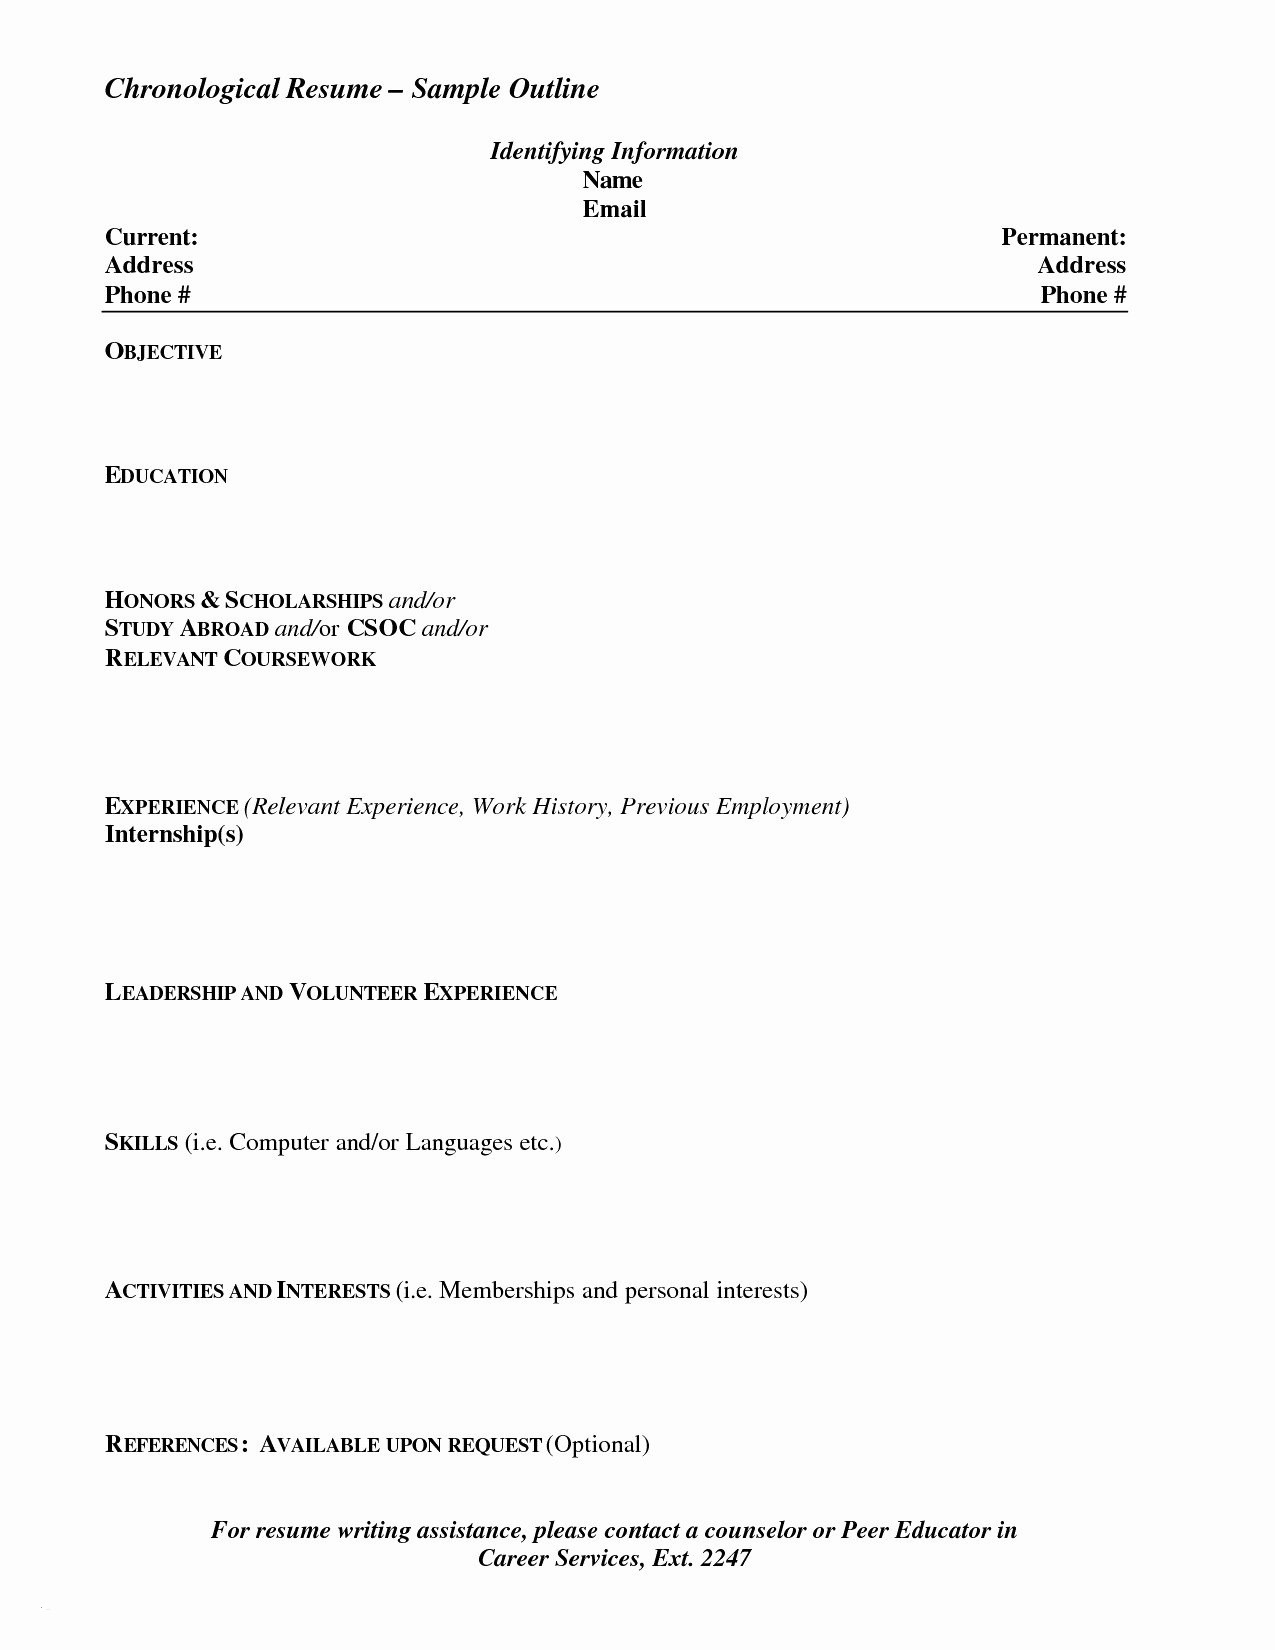 Reverse Chronological Resume Template Word - Example Chronological Resume Paragraphrewriter